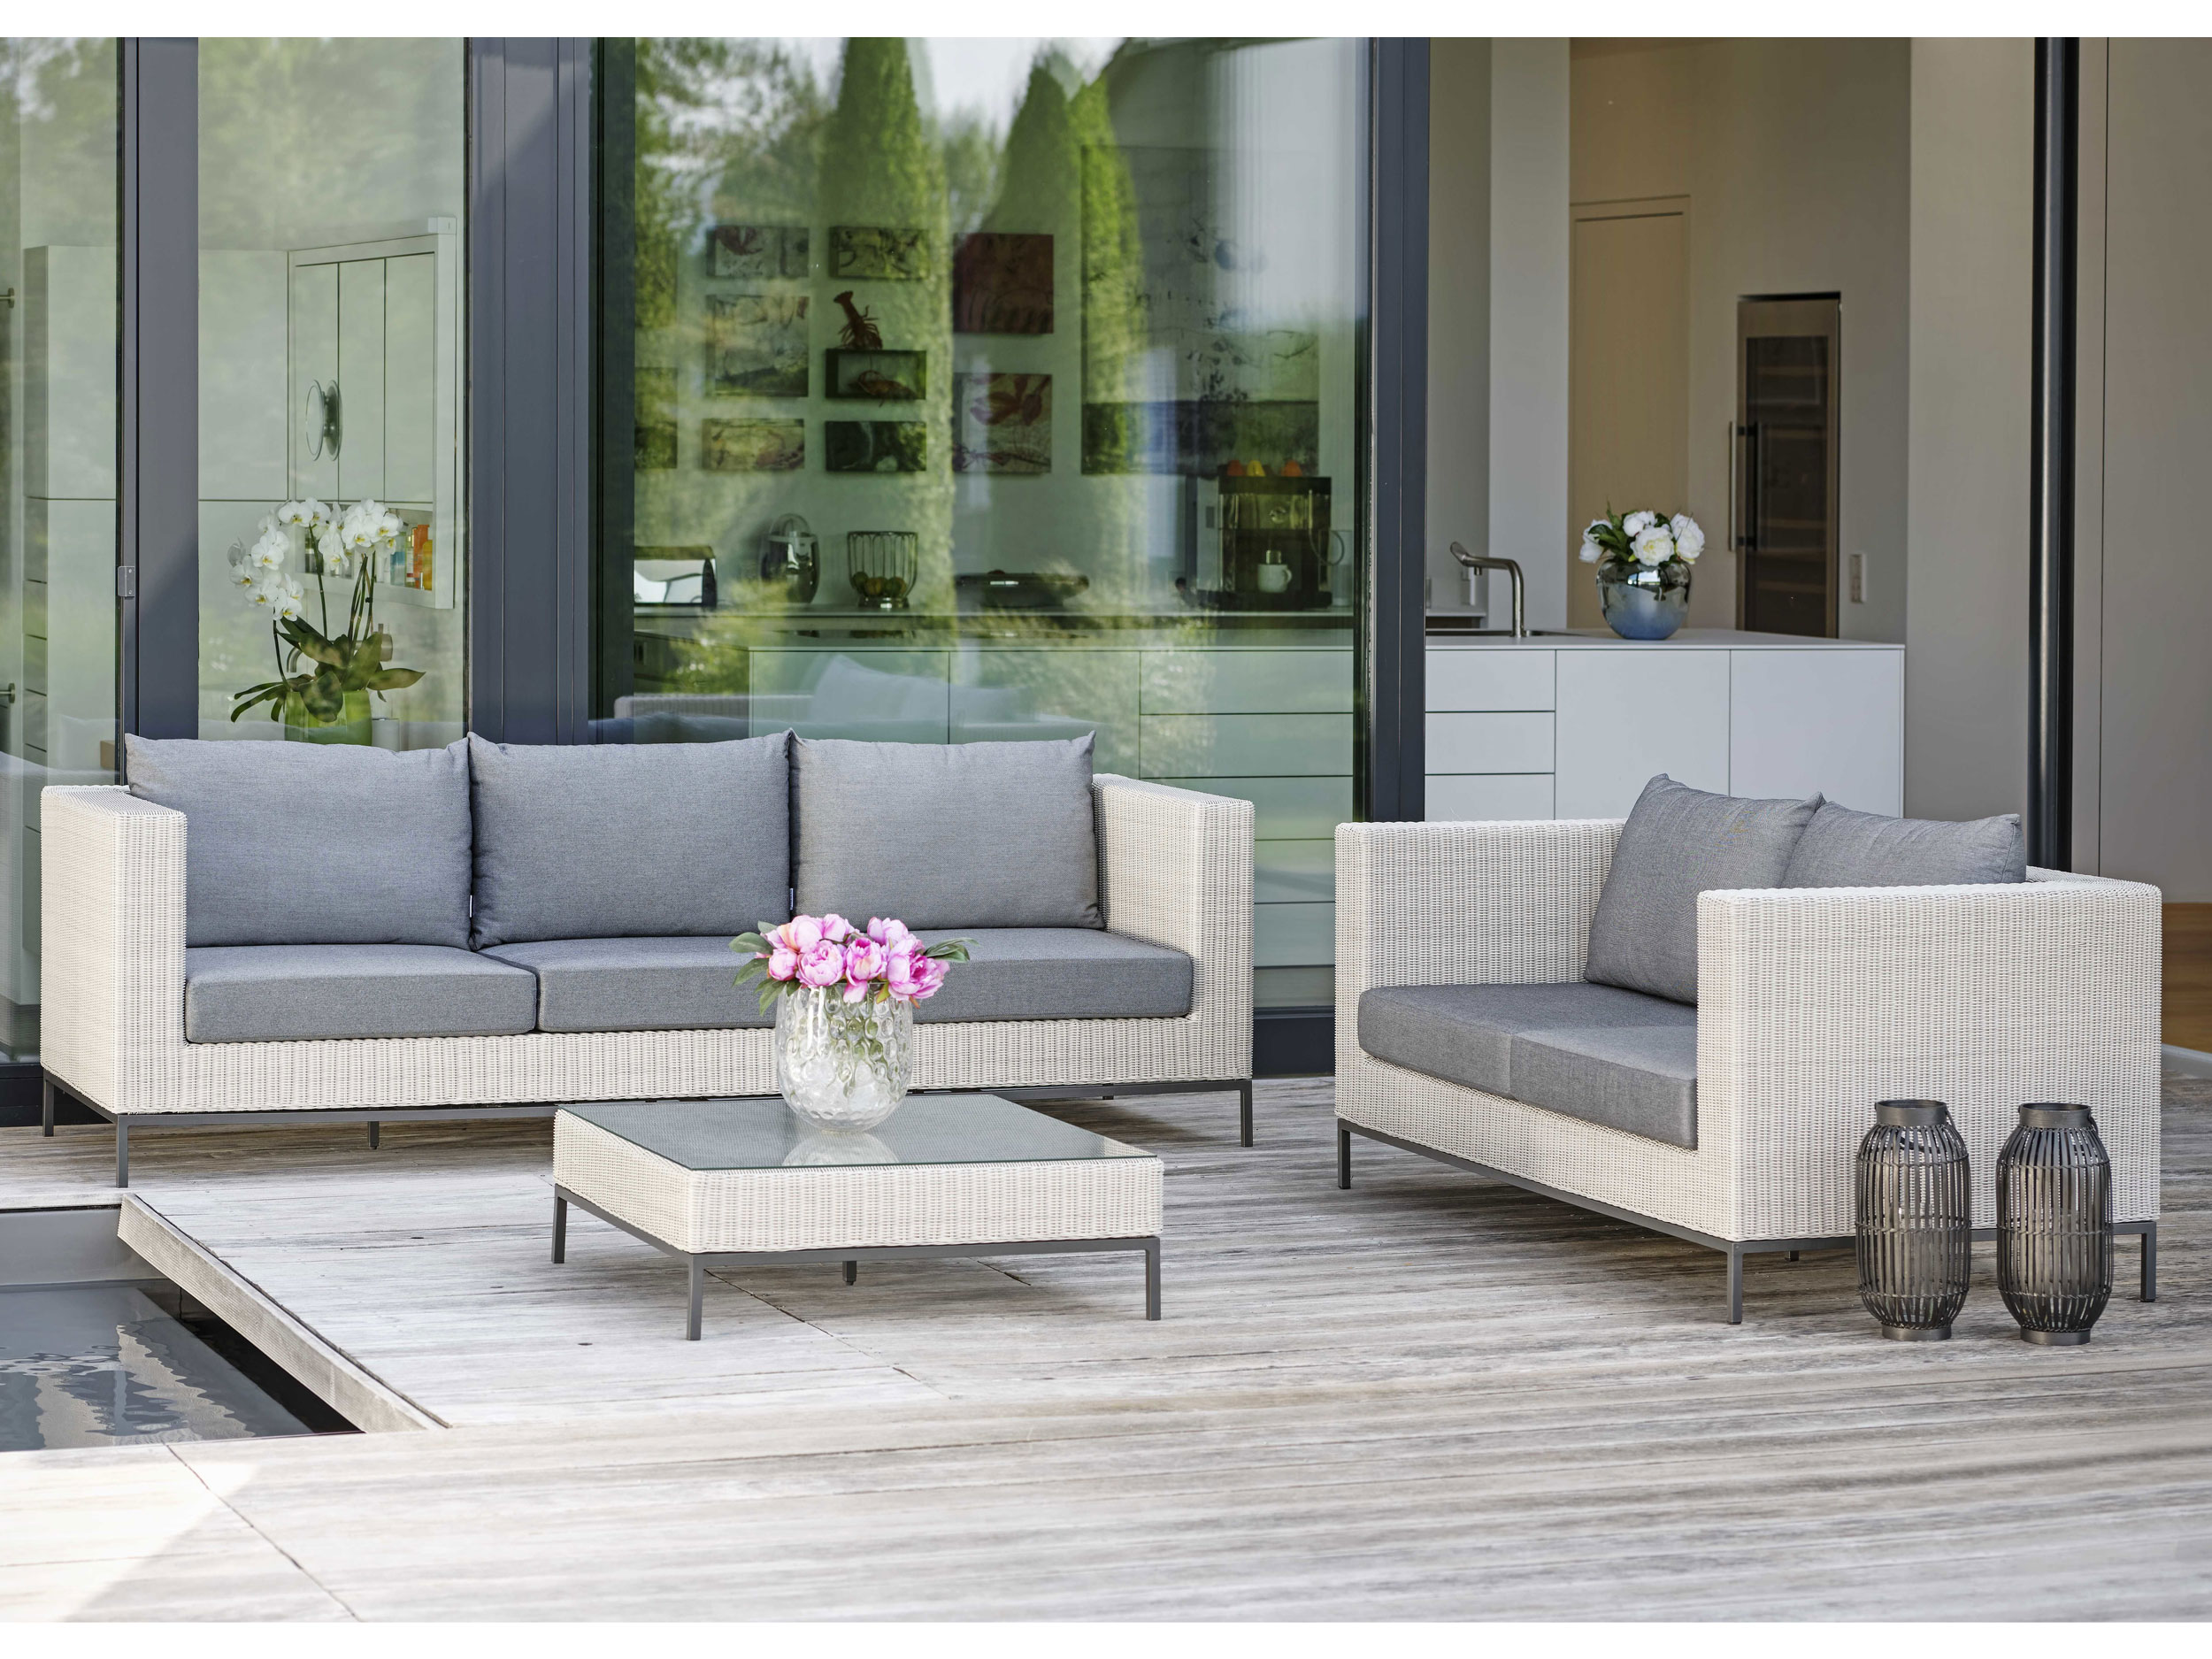 Stern gartenm bel juno garten lounge set geflecht for Gartenmobel stern outlet